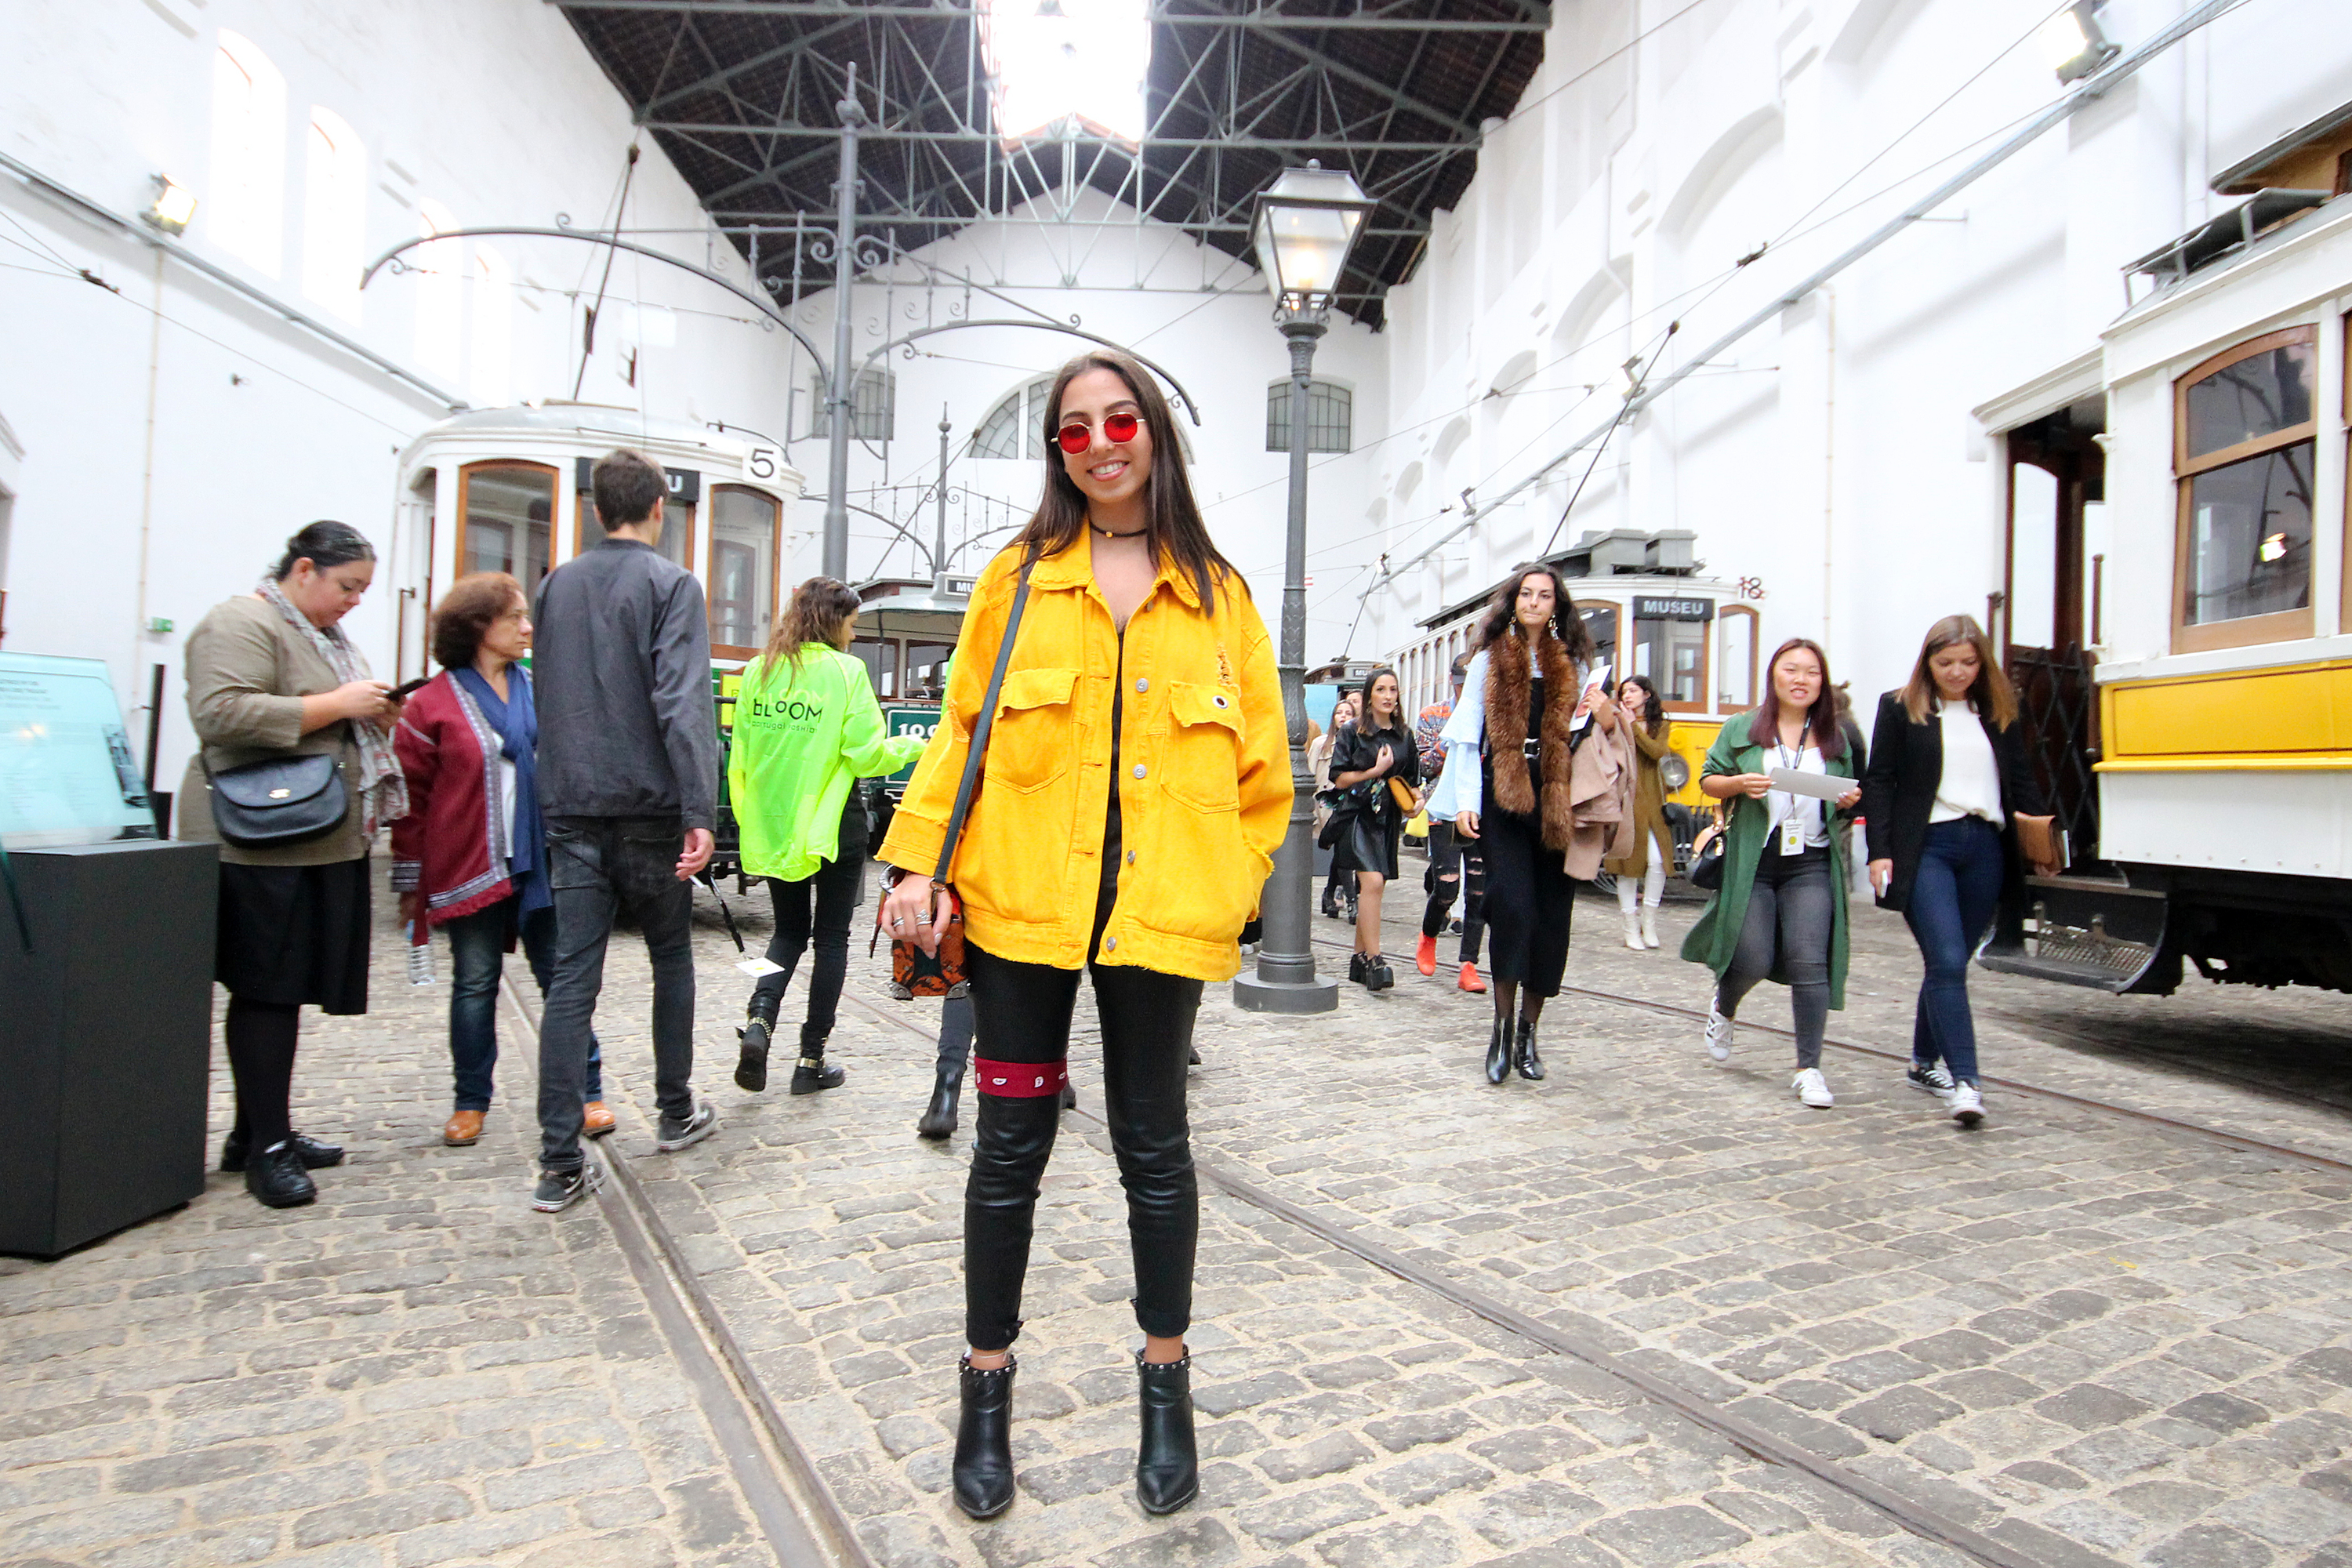 O melhor do street style no primeiro dia do Portugal Fashion